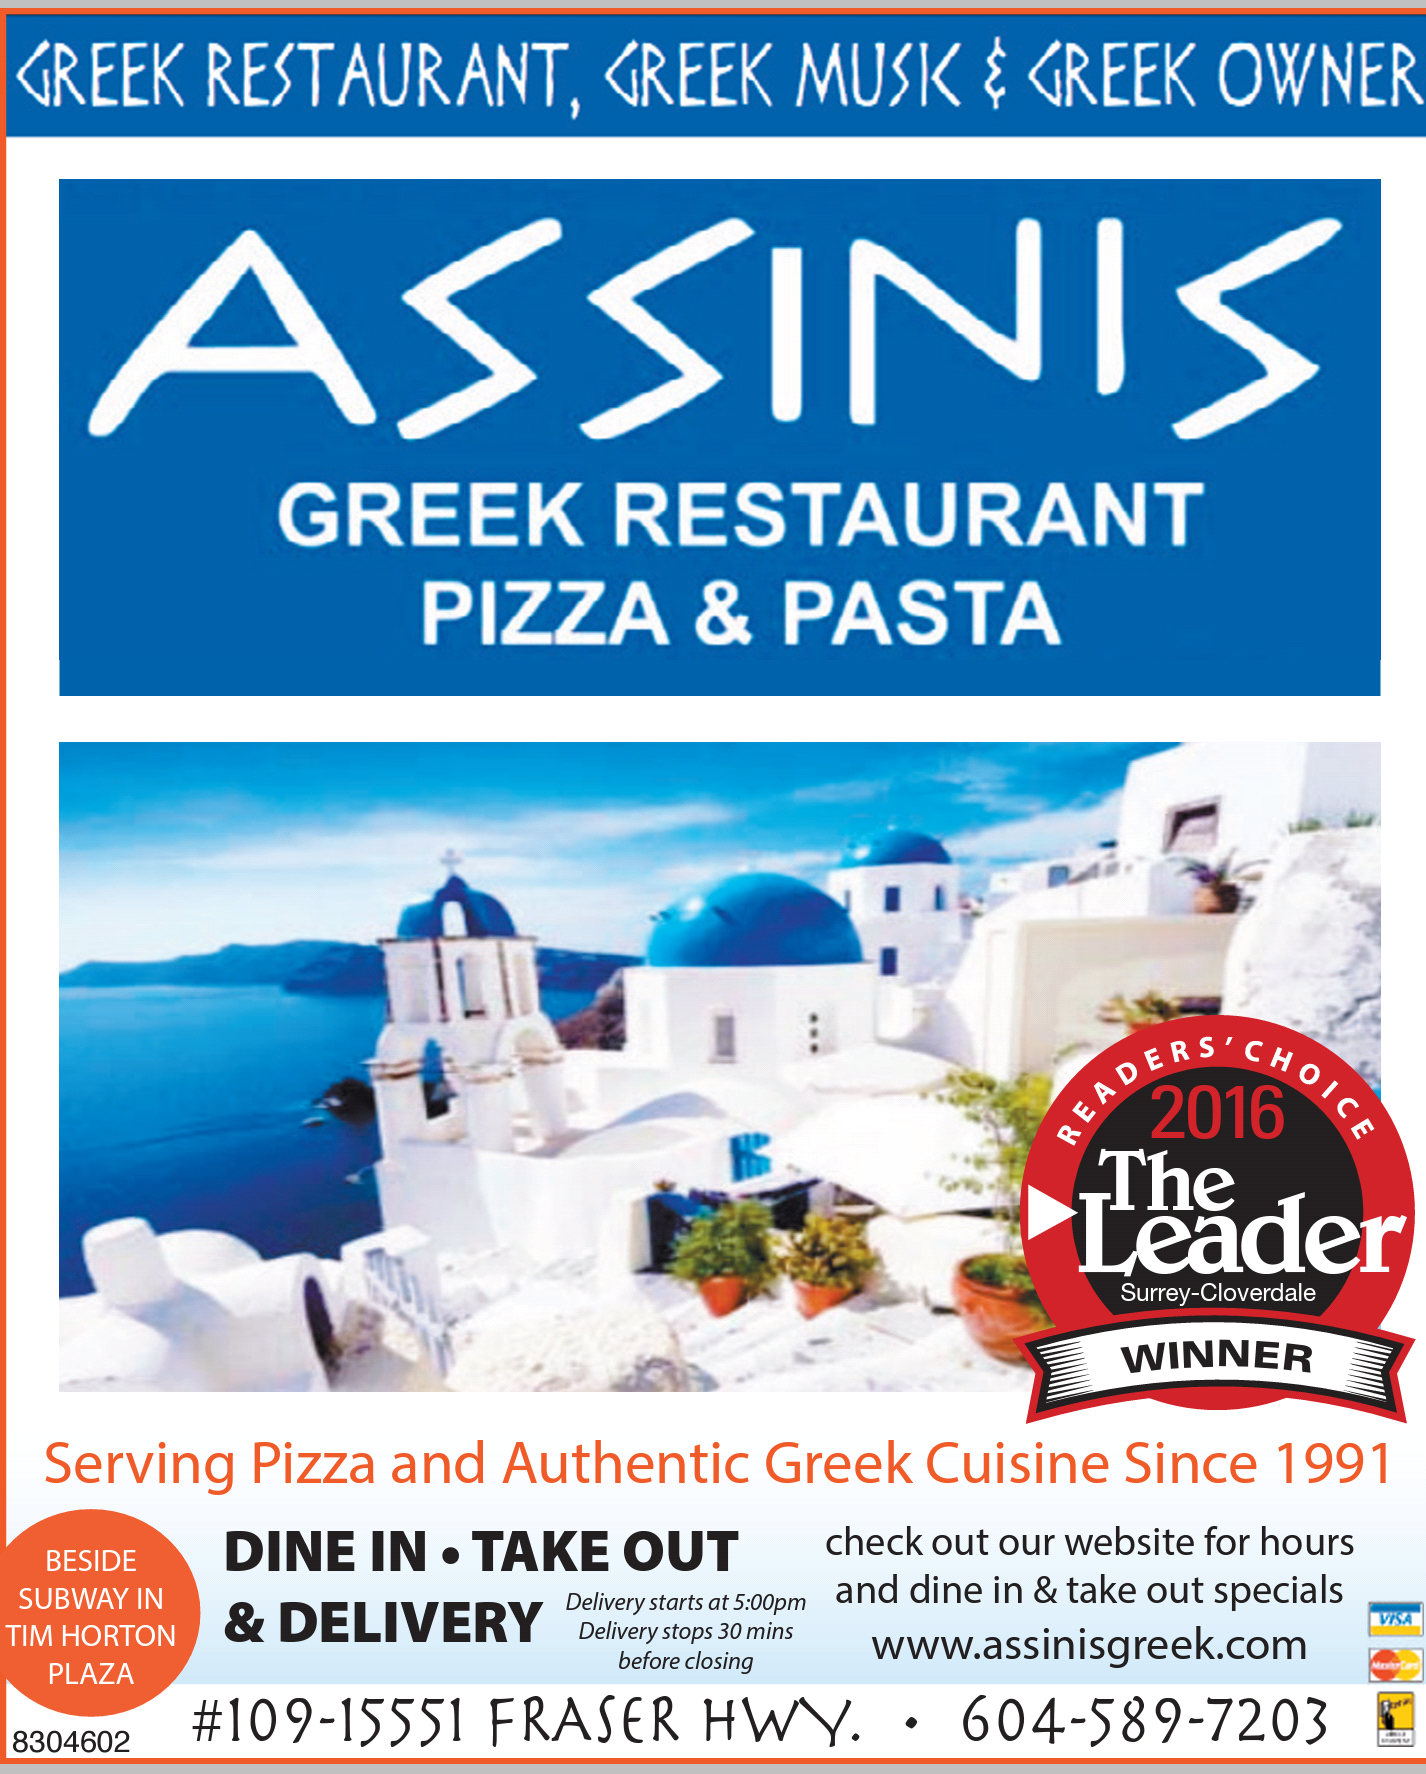 Assinis Greek Restaurant – Pizza and Pasta House